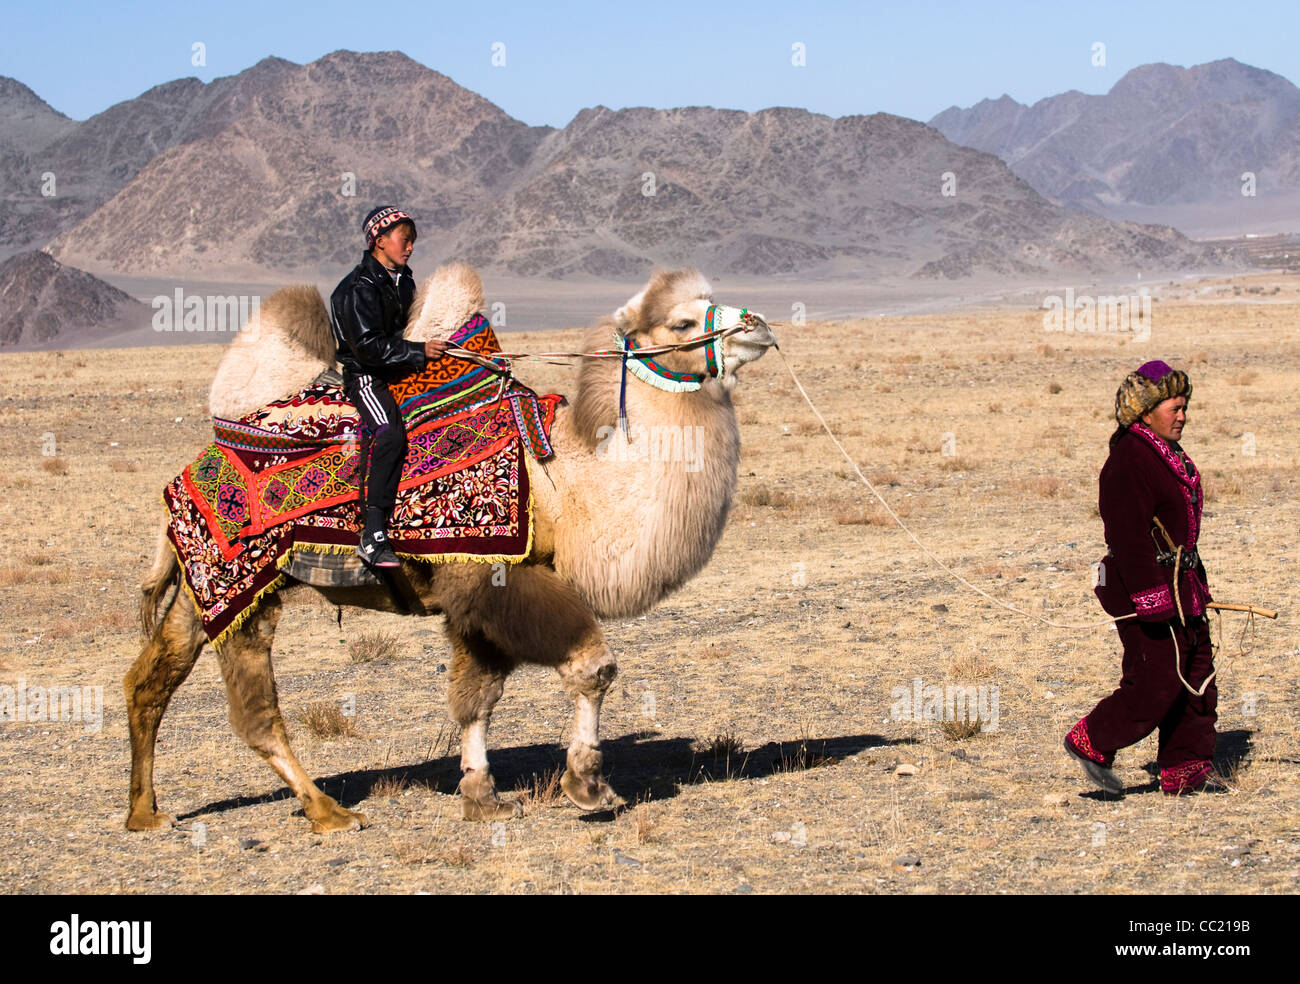 A Kazakh herder with his son in the vast steppe of the Altai region of Western Mongolia. - Stock Image